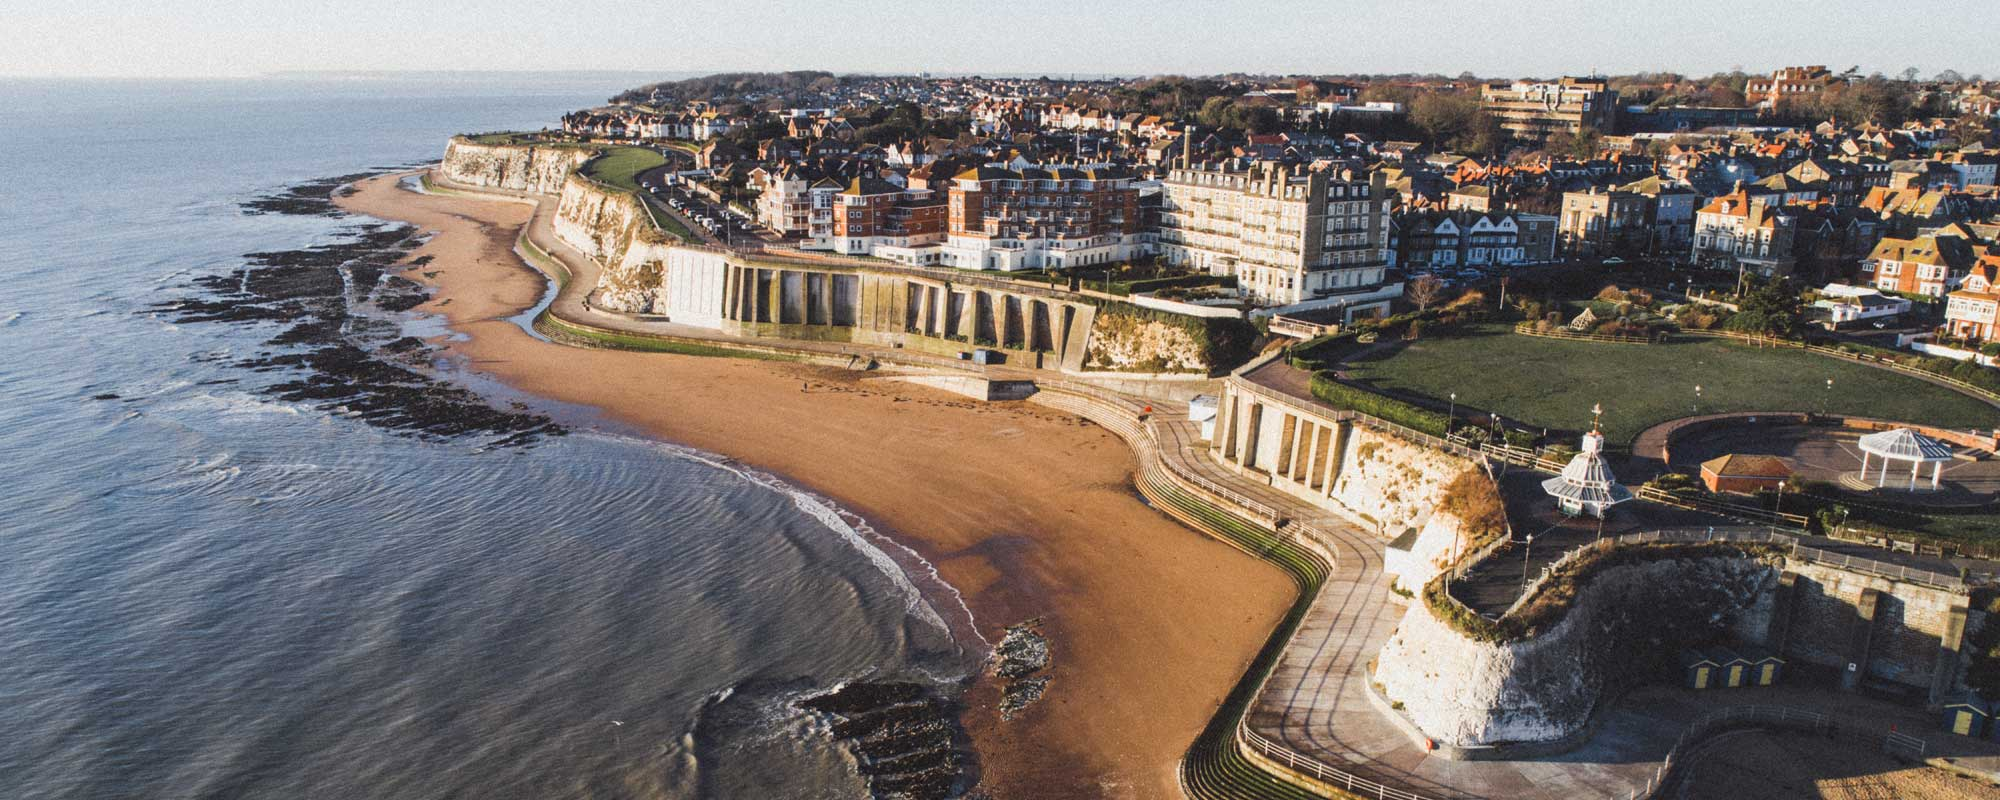 Drone image of Louisa Bay, Broadstairs, Kent